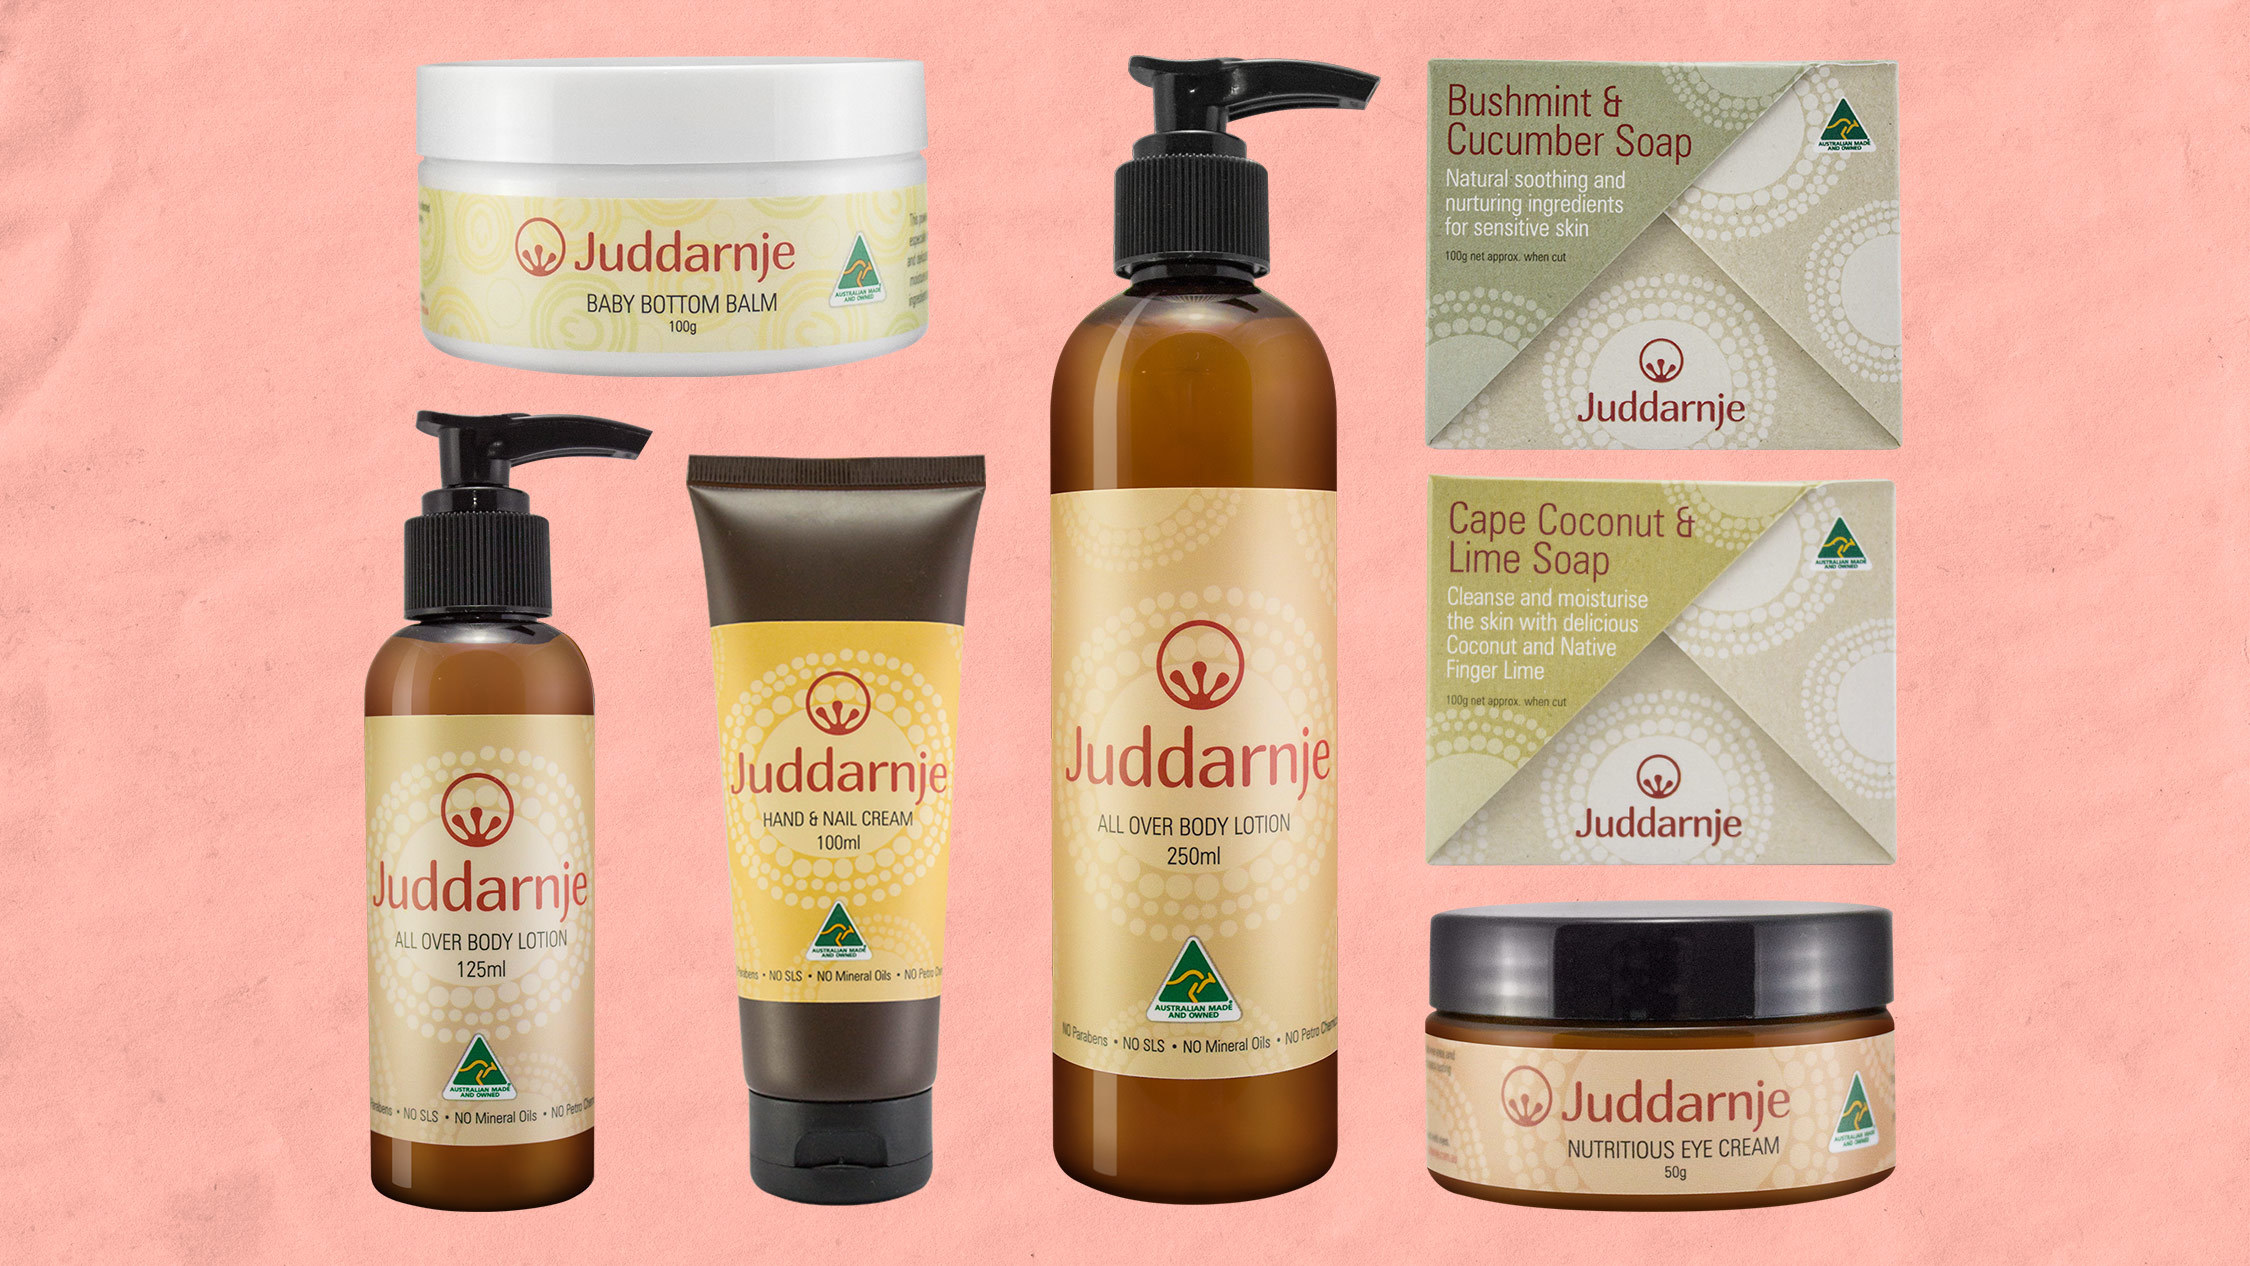 Beauty Products By Indigenous Businesses Gieve Eucalyptus Body Lotion Juddarnje Skincare